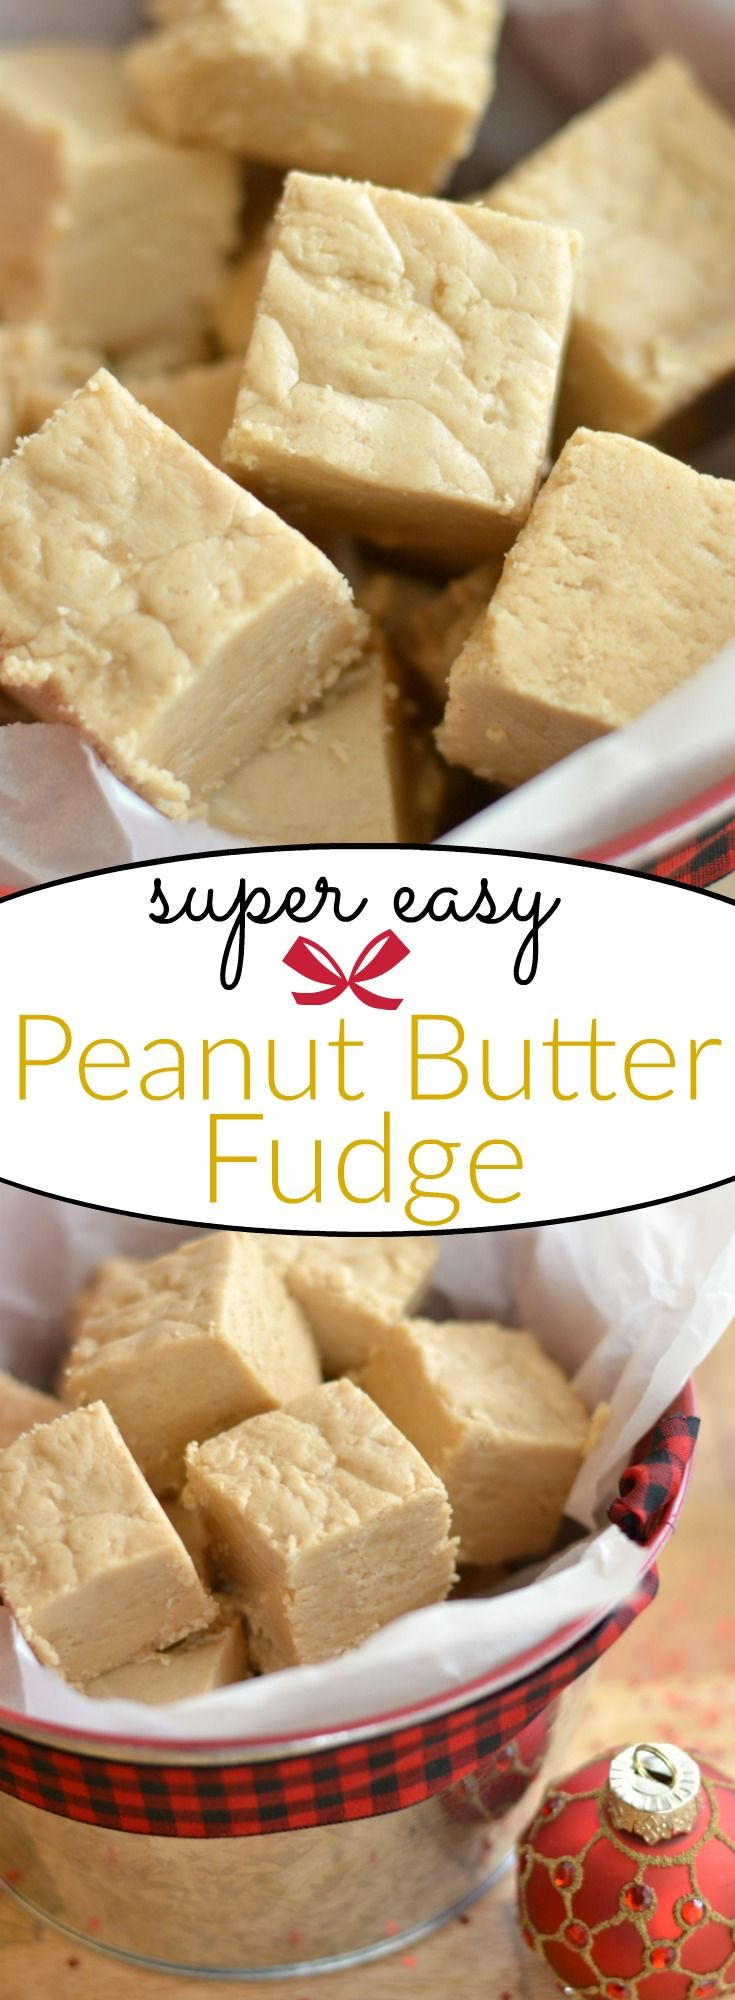 Delicious and easy peanut butter fudge recipe. Great idea for a homemade holiday food gift.